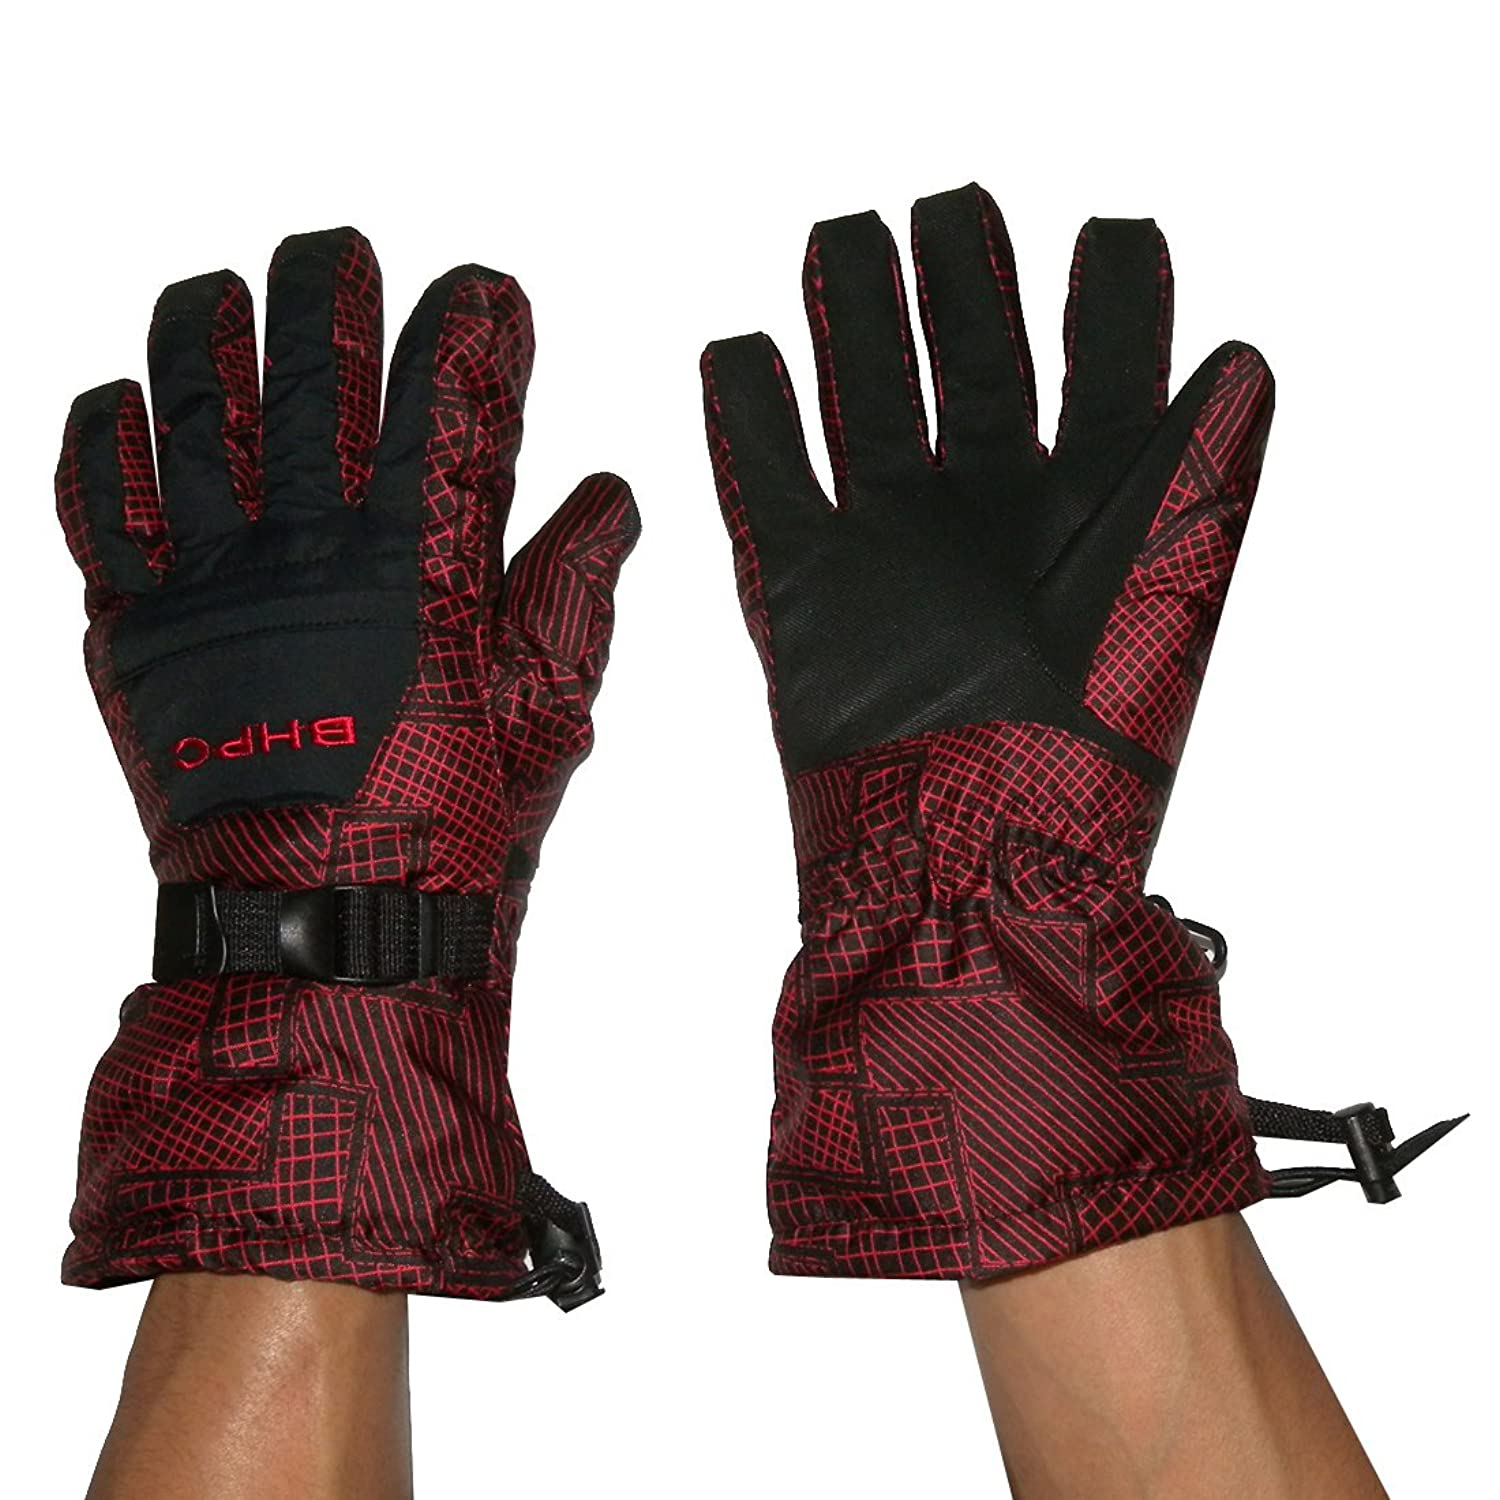 Herren Bhpc Professional Warm & Windproof Insulated Winter Ski Handschuhe with Interior Lining